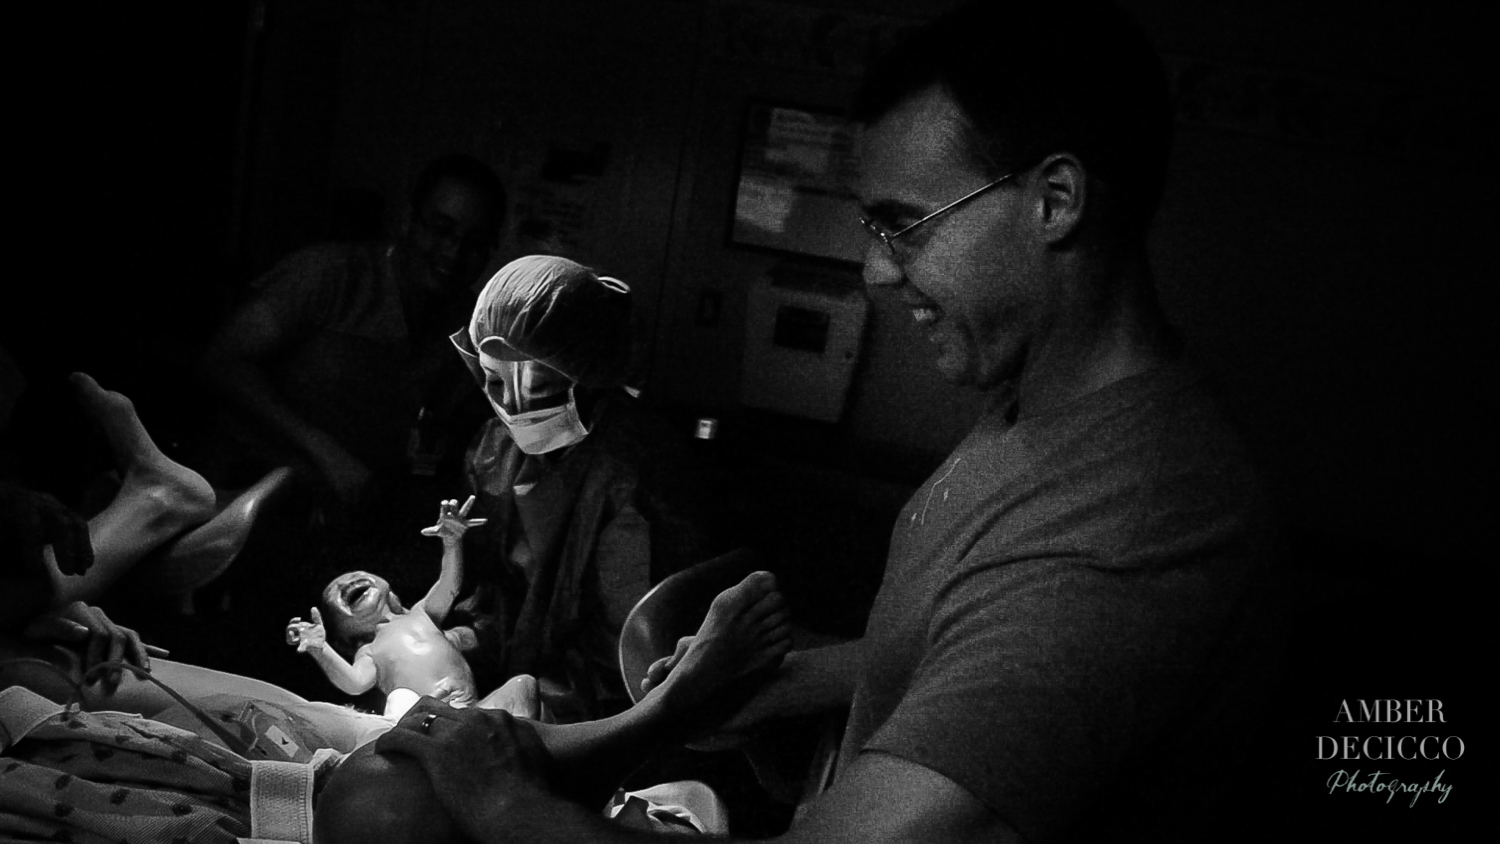 Dad is so happy when he sees his baby for the first time | Birth Photography ©Amber DeCicco Photography